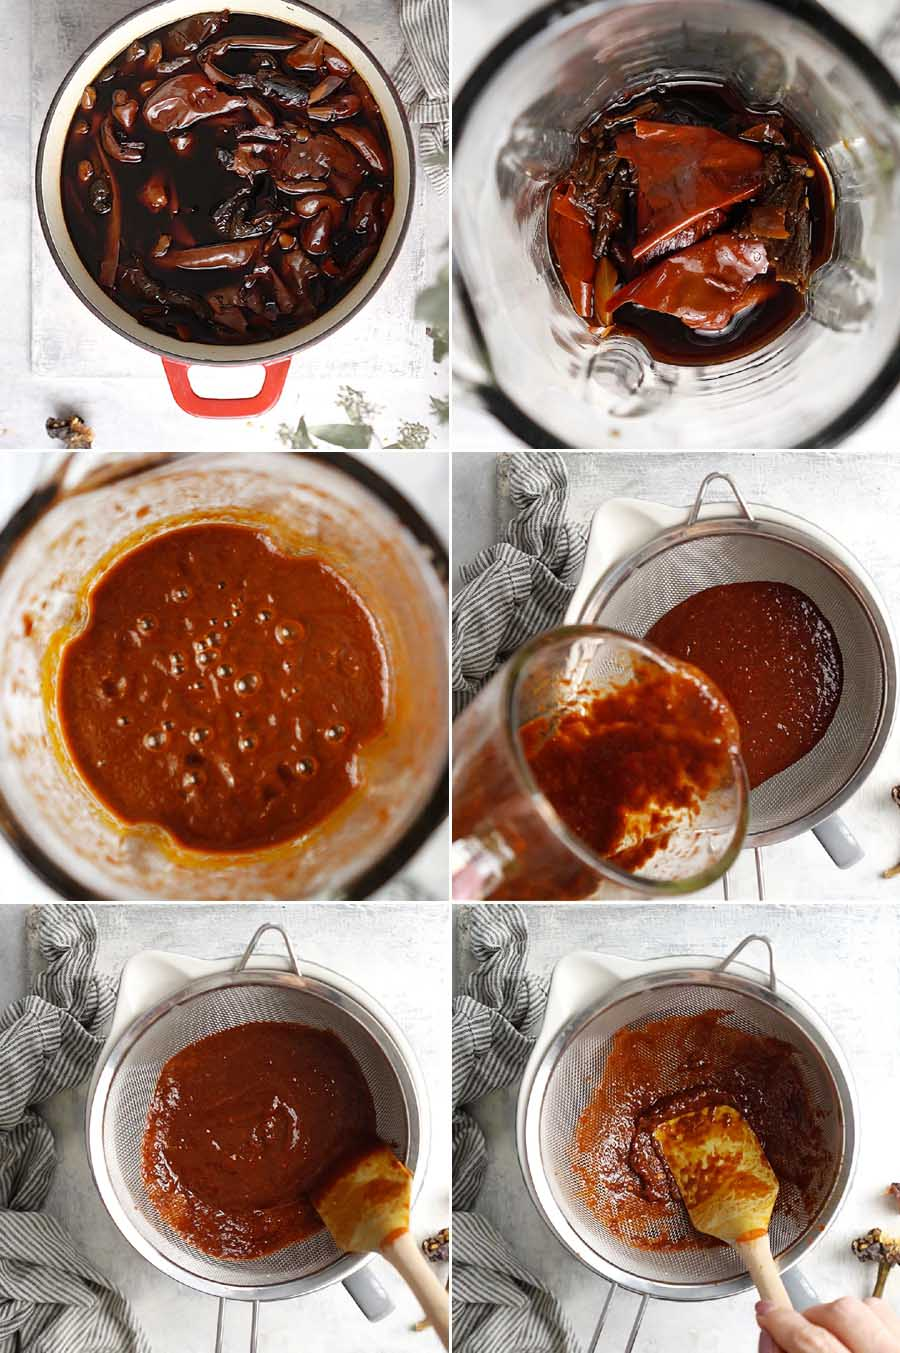 Blending the cooked red chiles in a blending then passing them thru a strainer.